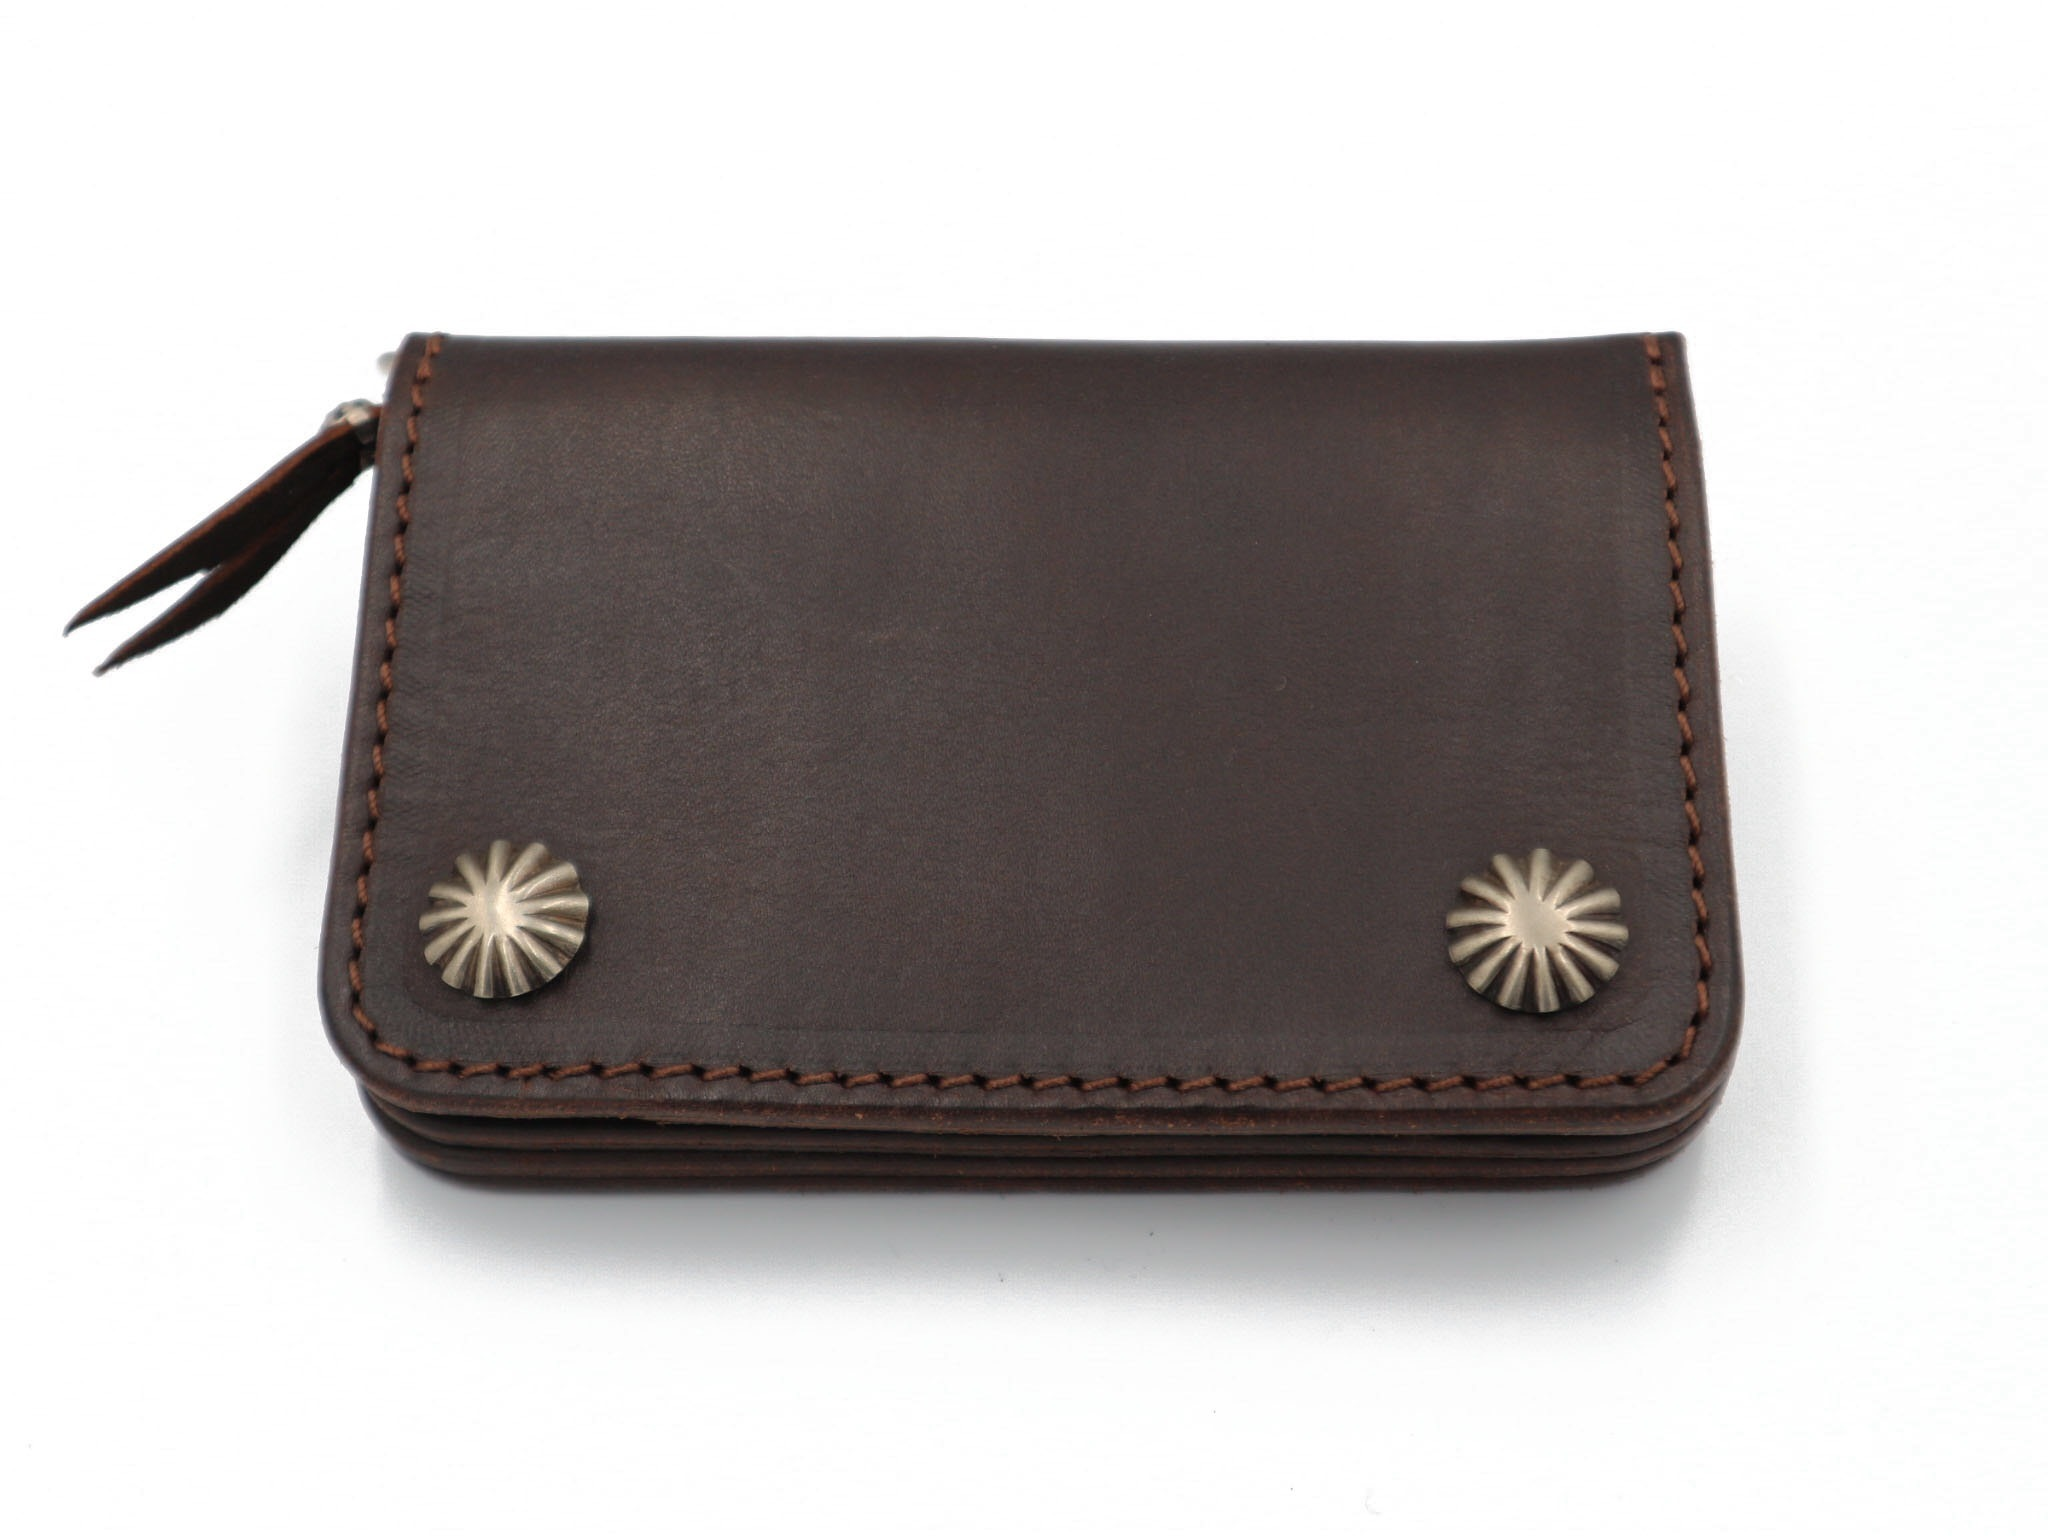 6inch SHELL CONCHO WALLET